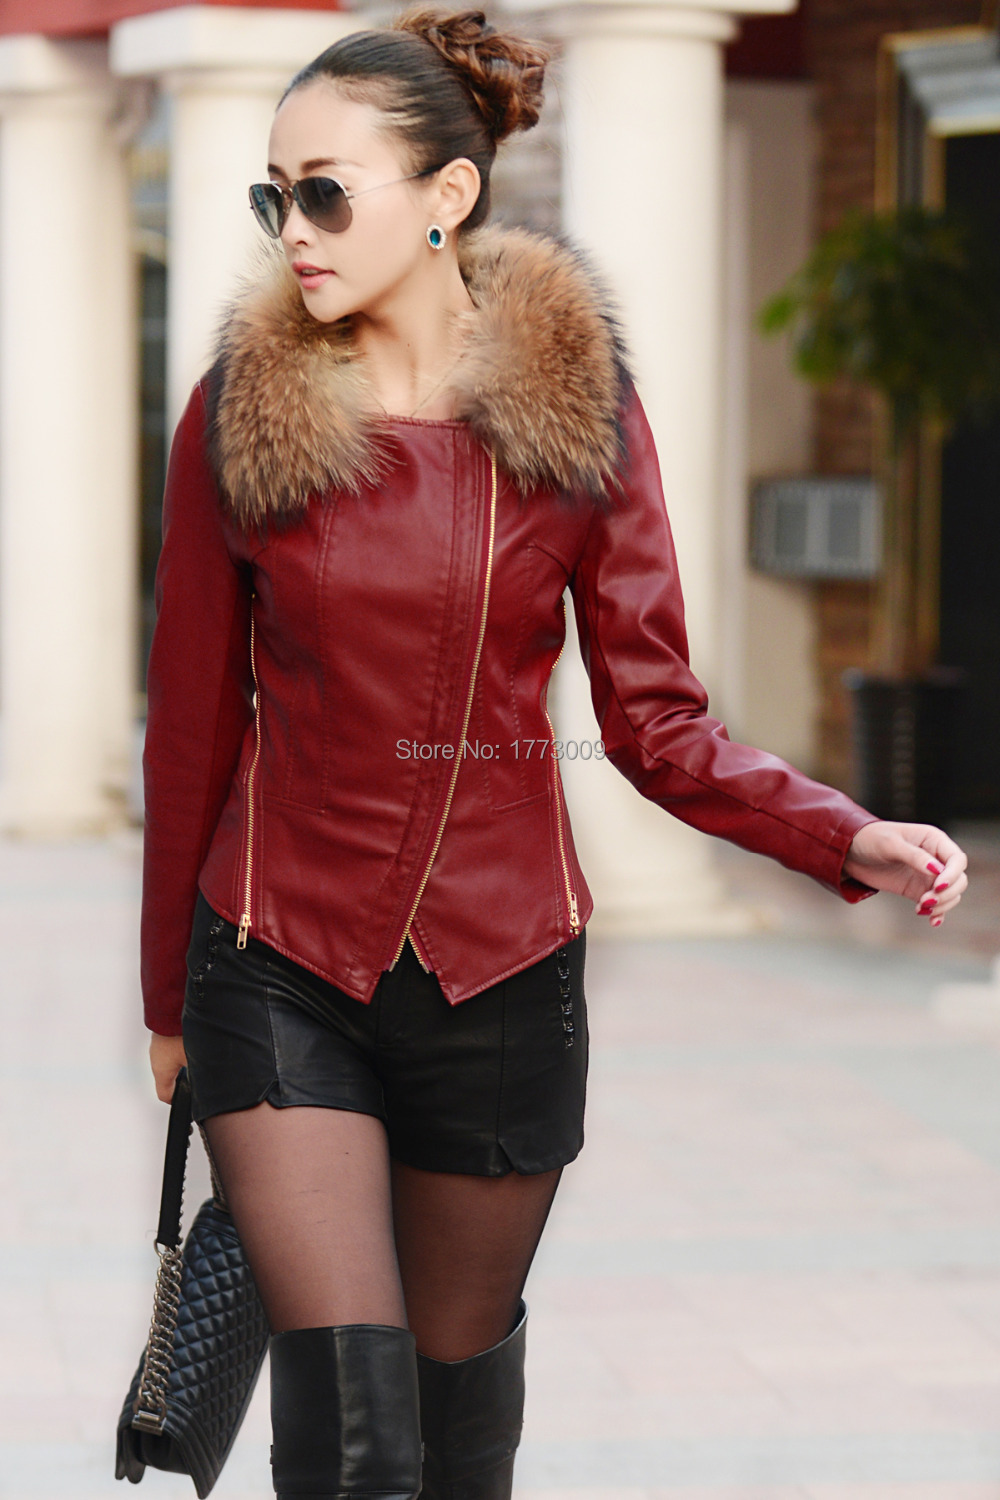 Soft Leather Jacket Womens - My Jacket